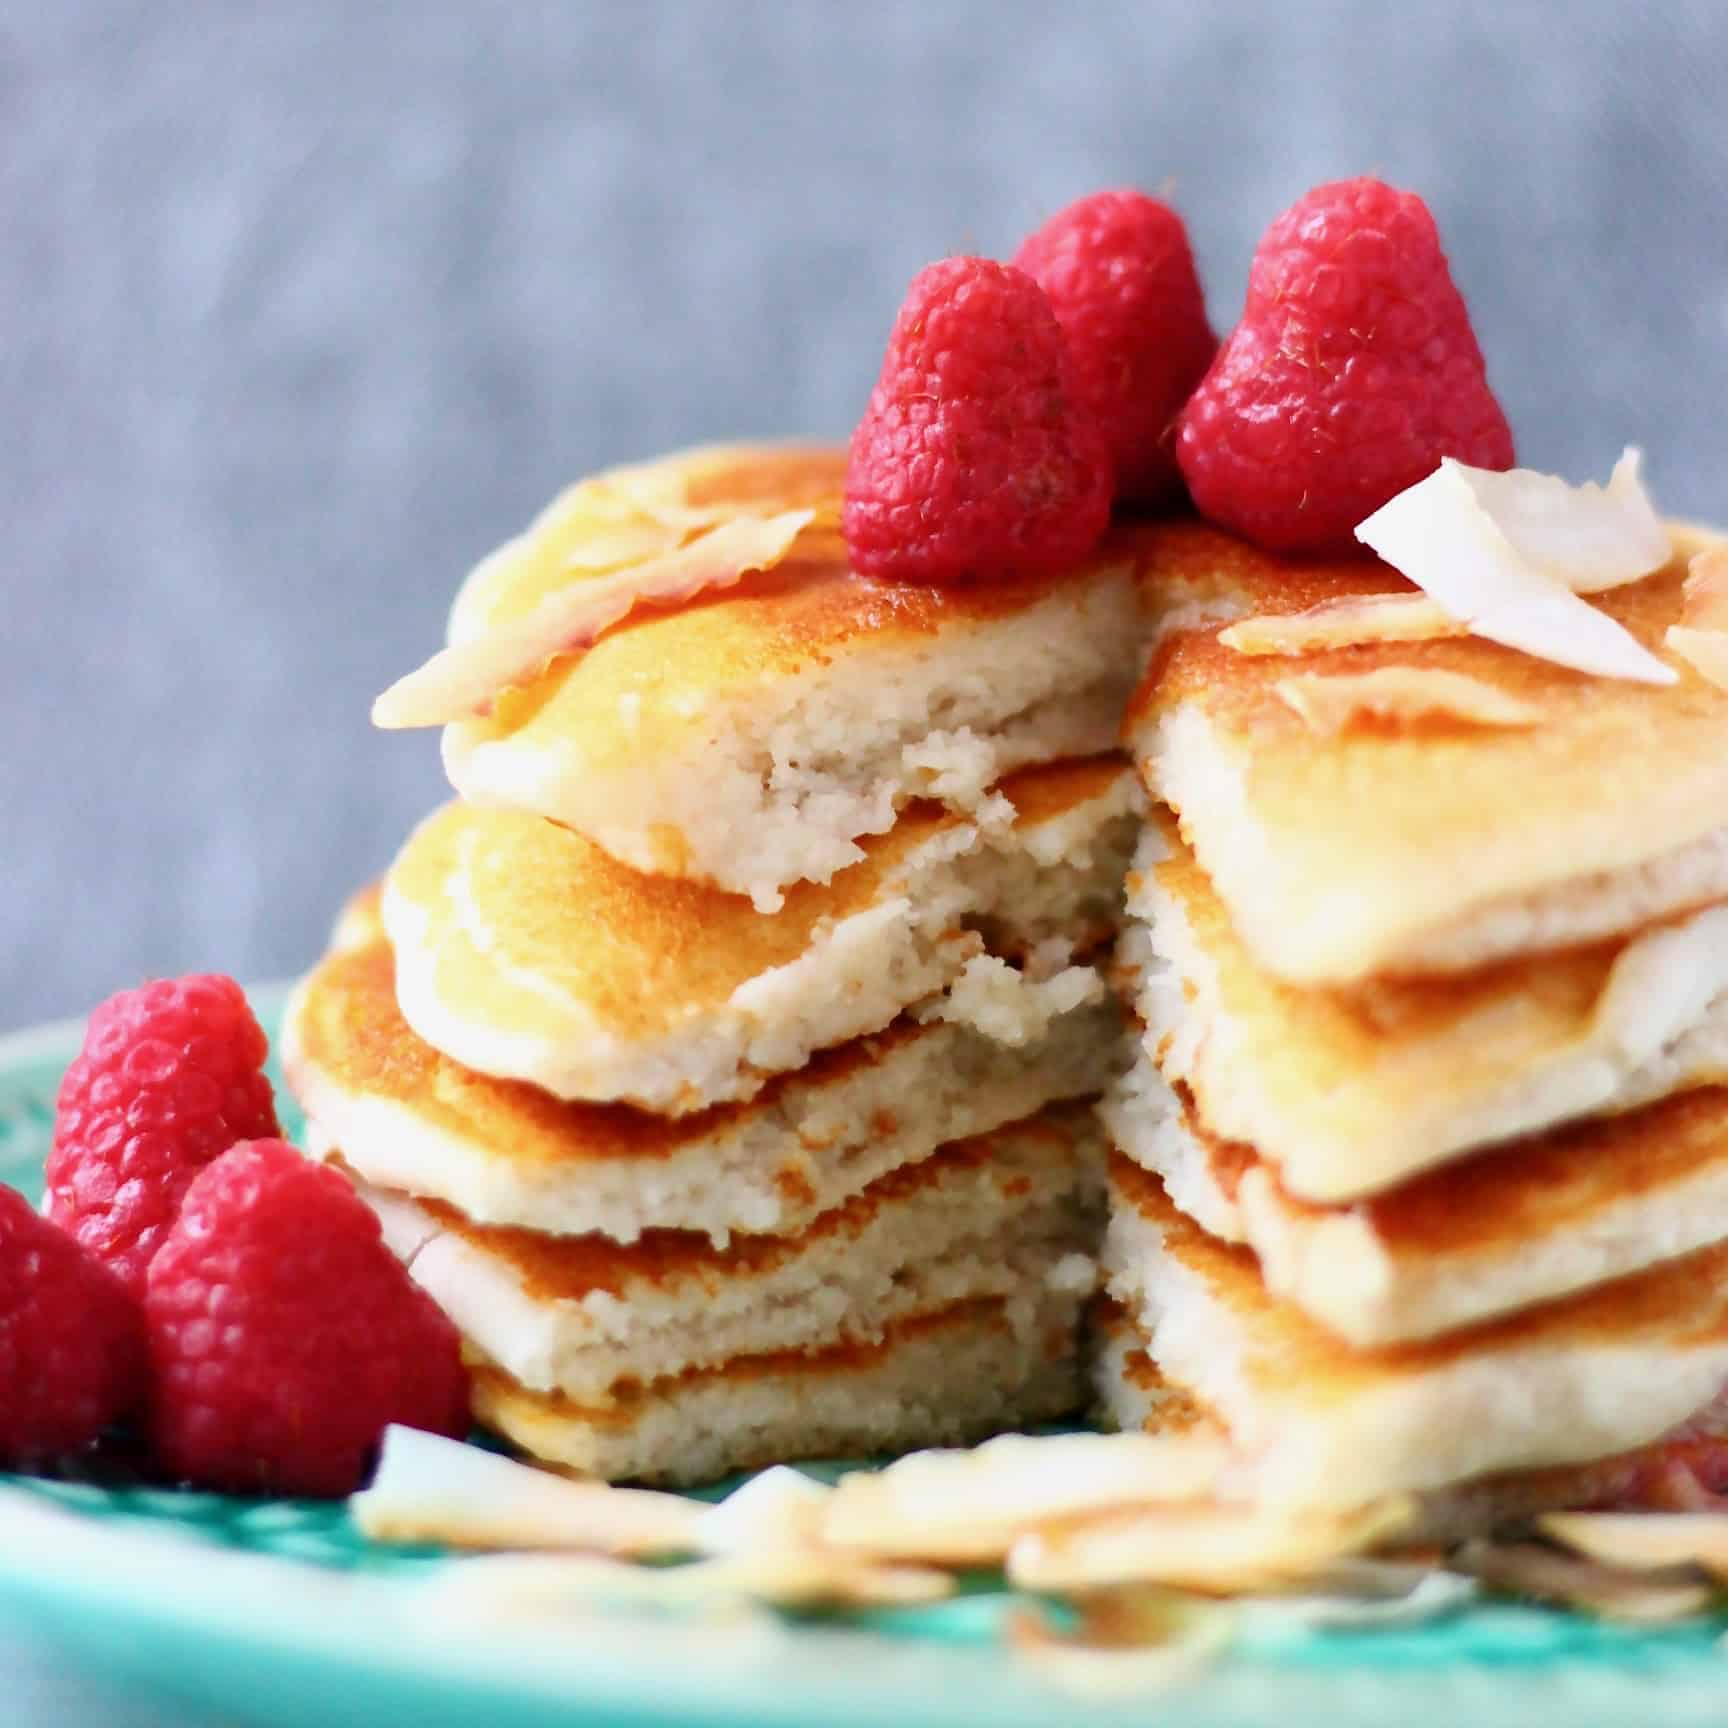 Five vegan coconut flour pancakes stacked in a pile decorated with fresh raspberries and coconut flakes on a green plate against a grey background